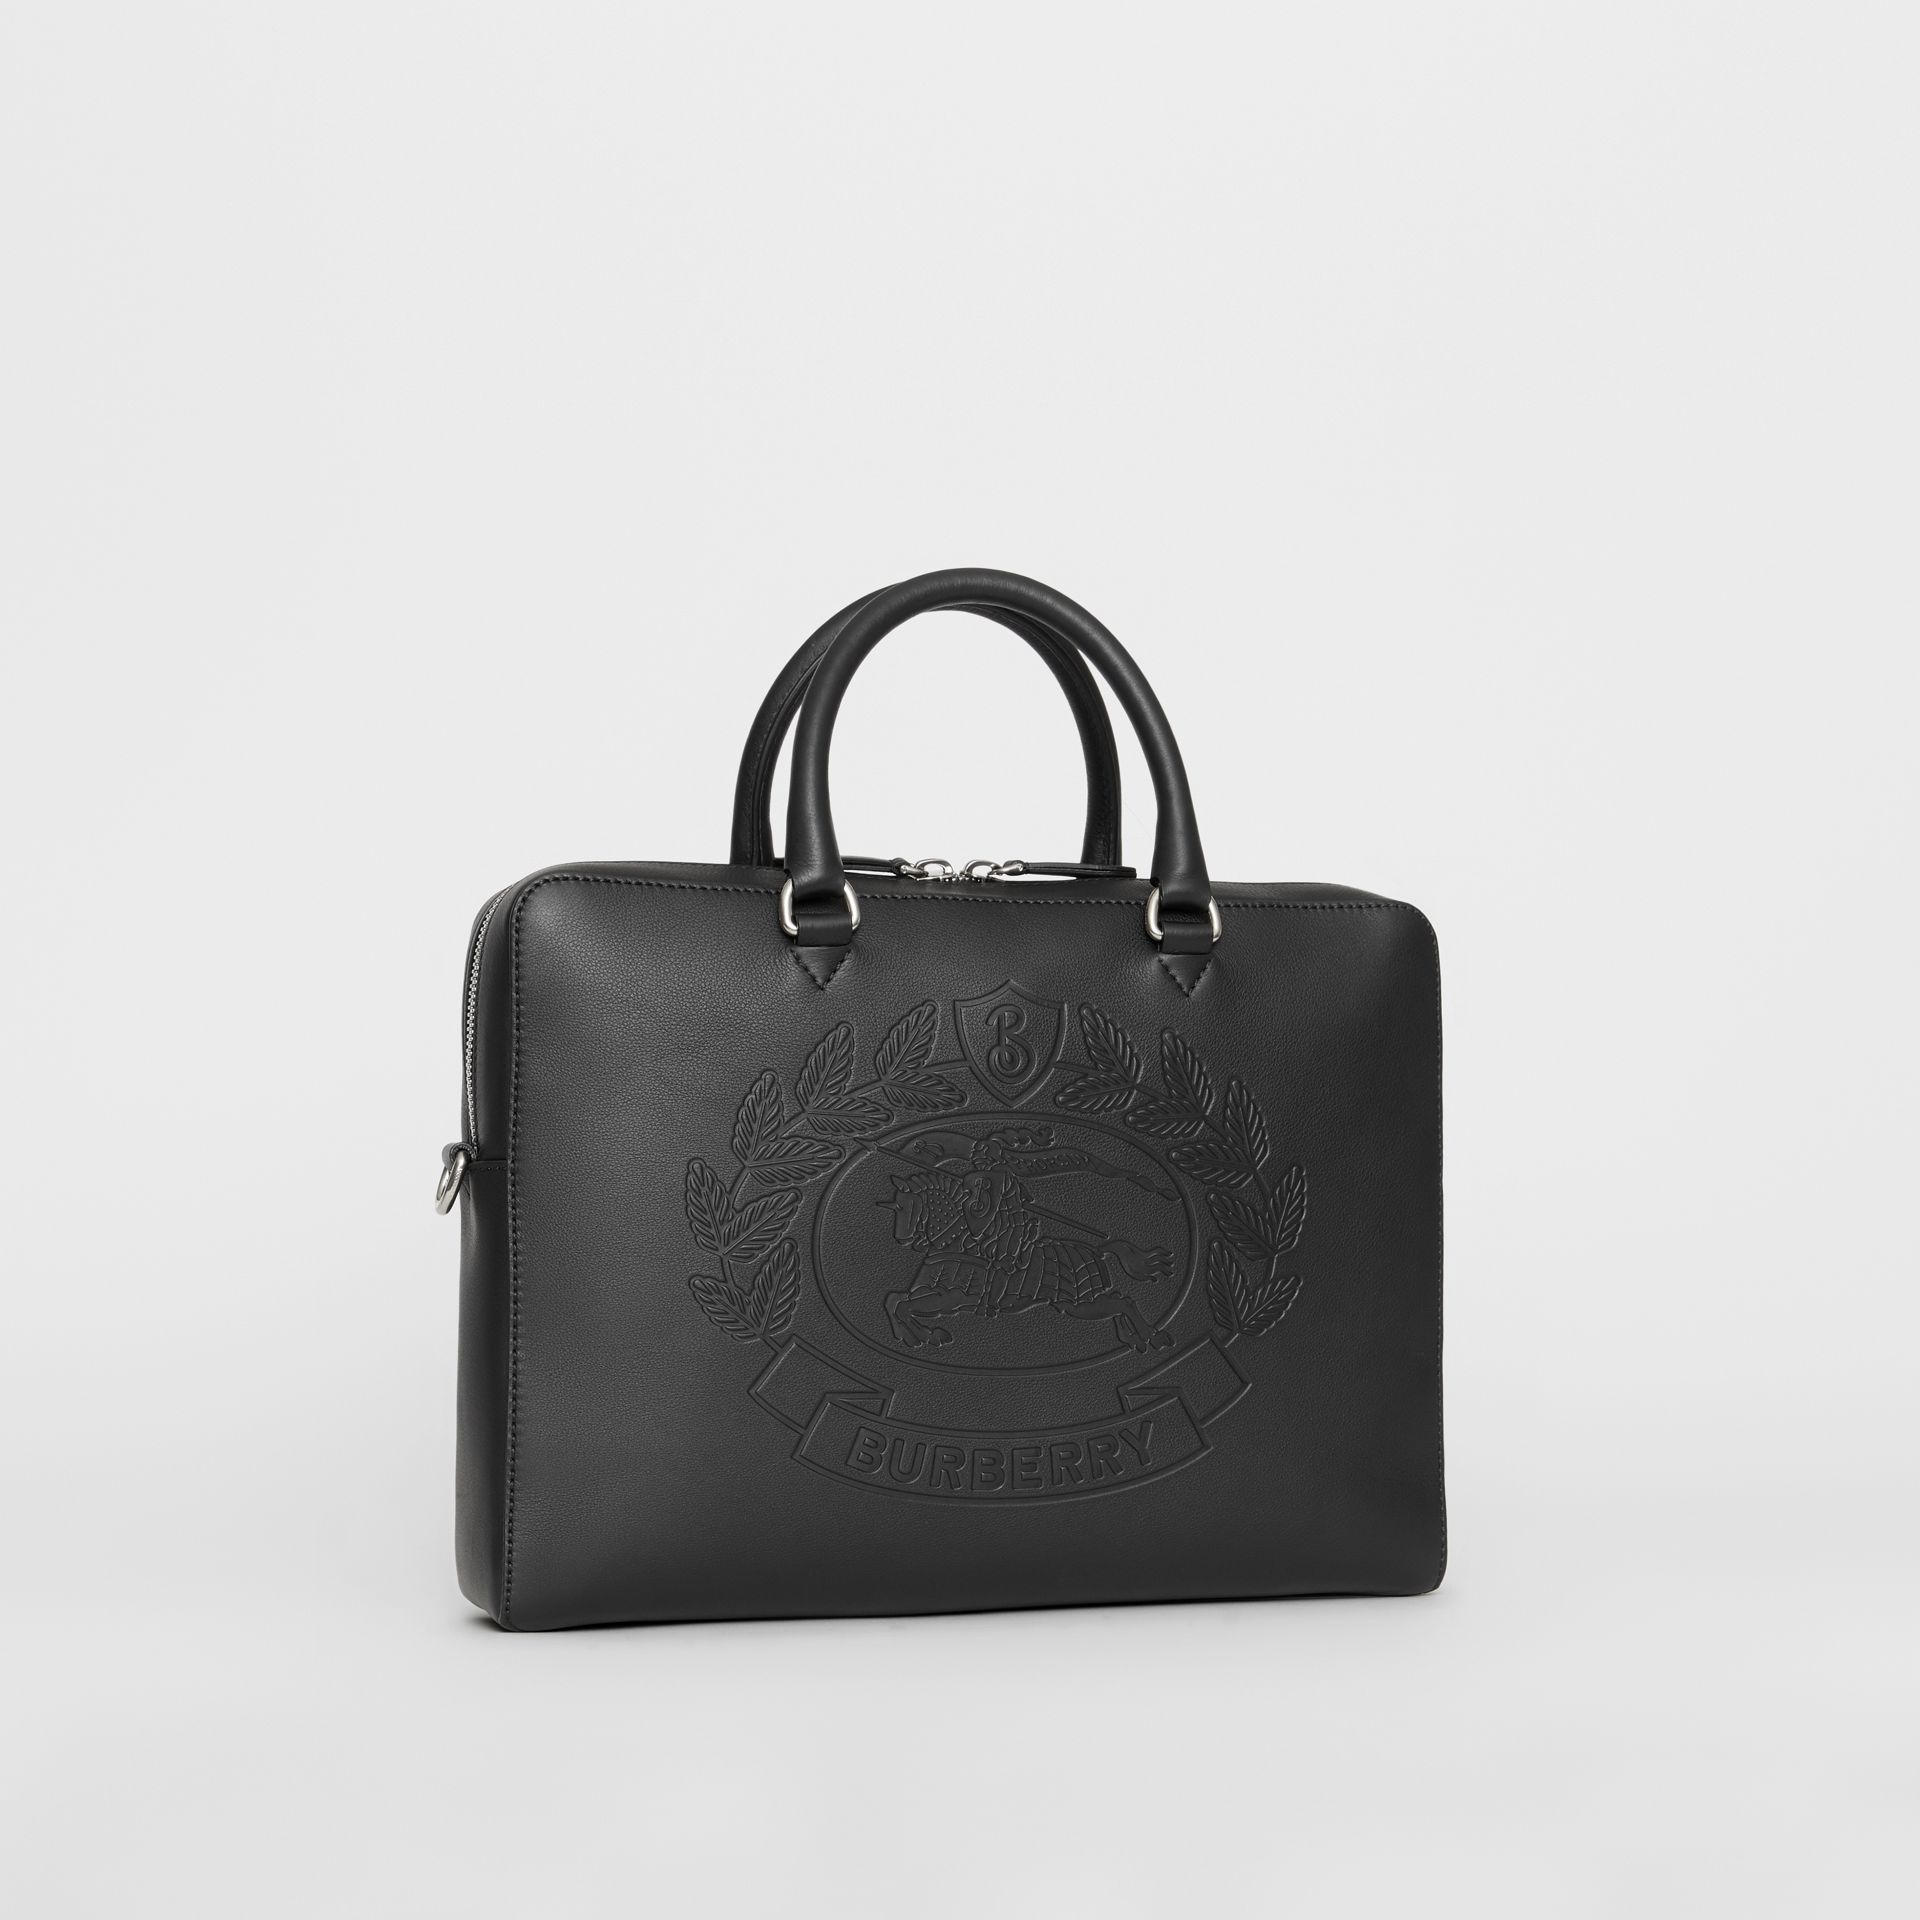 Attaché-case en cuir avec écusson estampé (Noir) - Homme | Burberry Canada - photo de la galerie 6